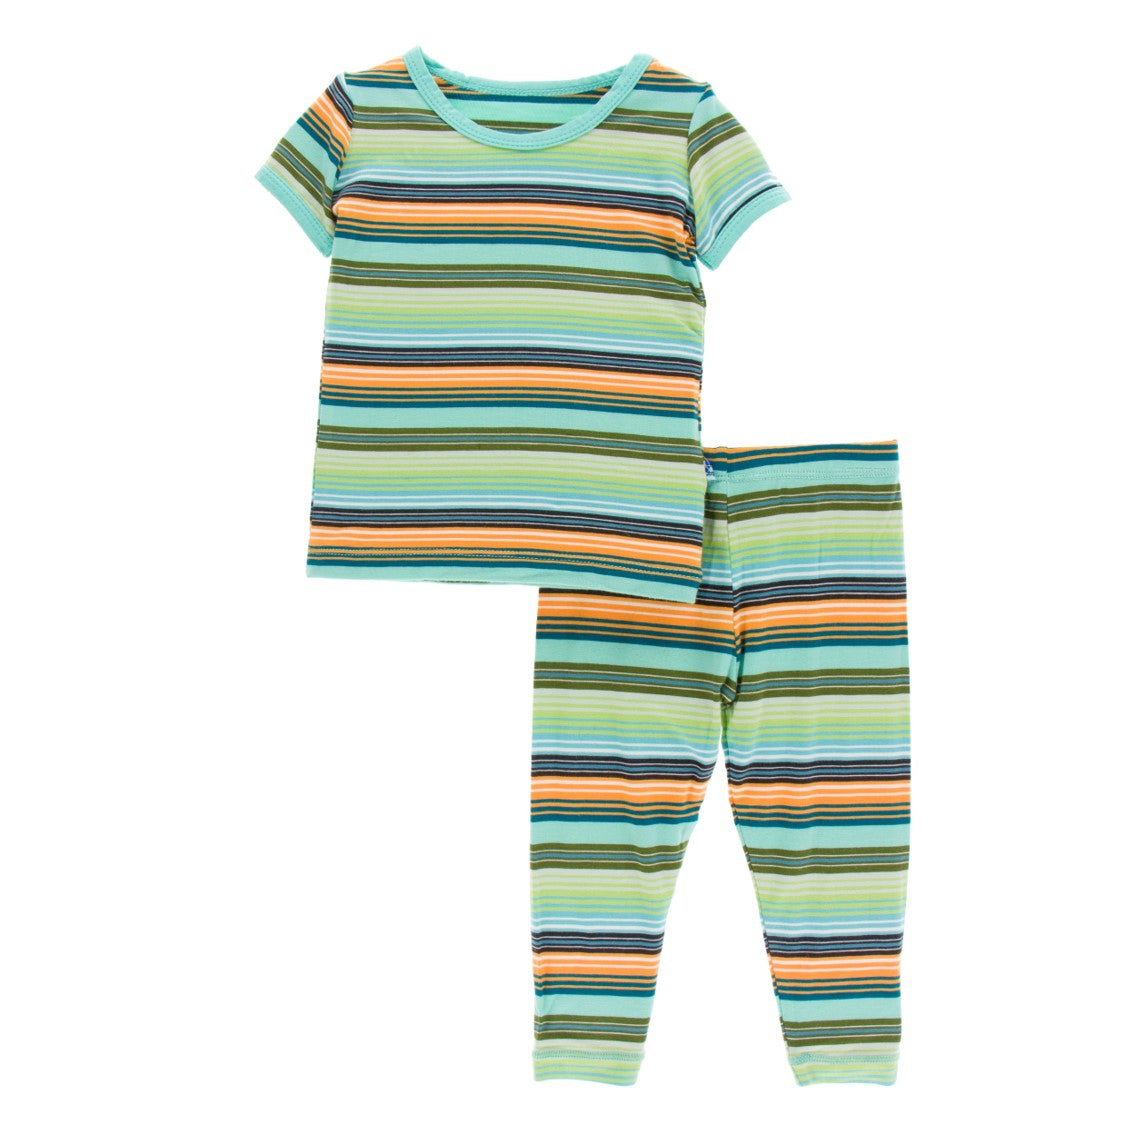 Kickee Pants - Cancun Collection - Pajama Set - Cancun Glass Stripe